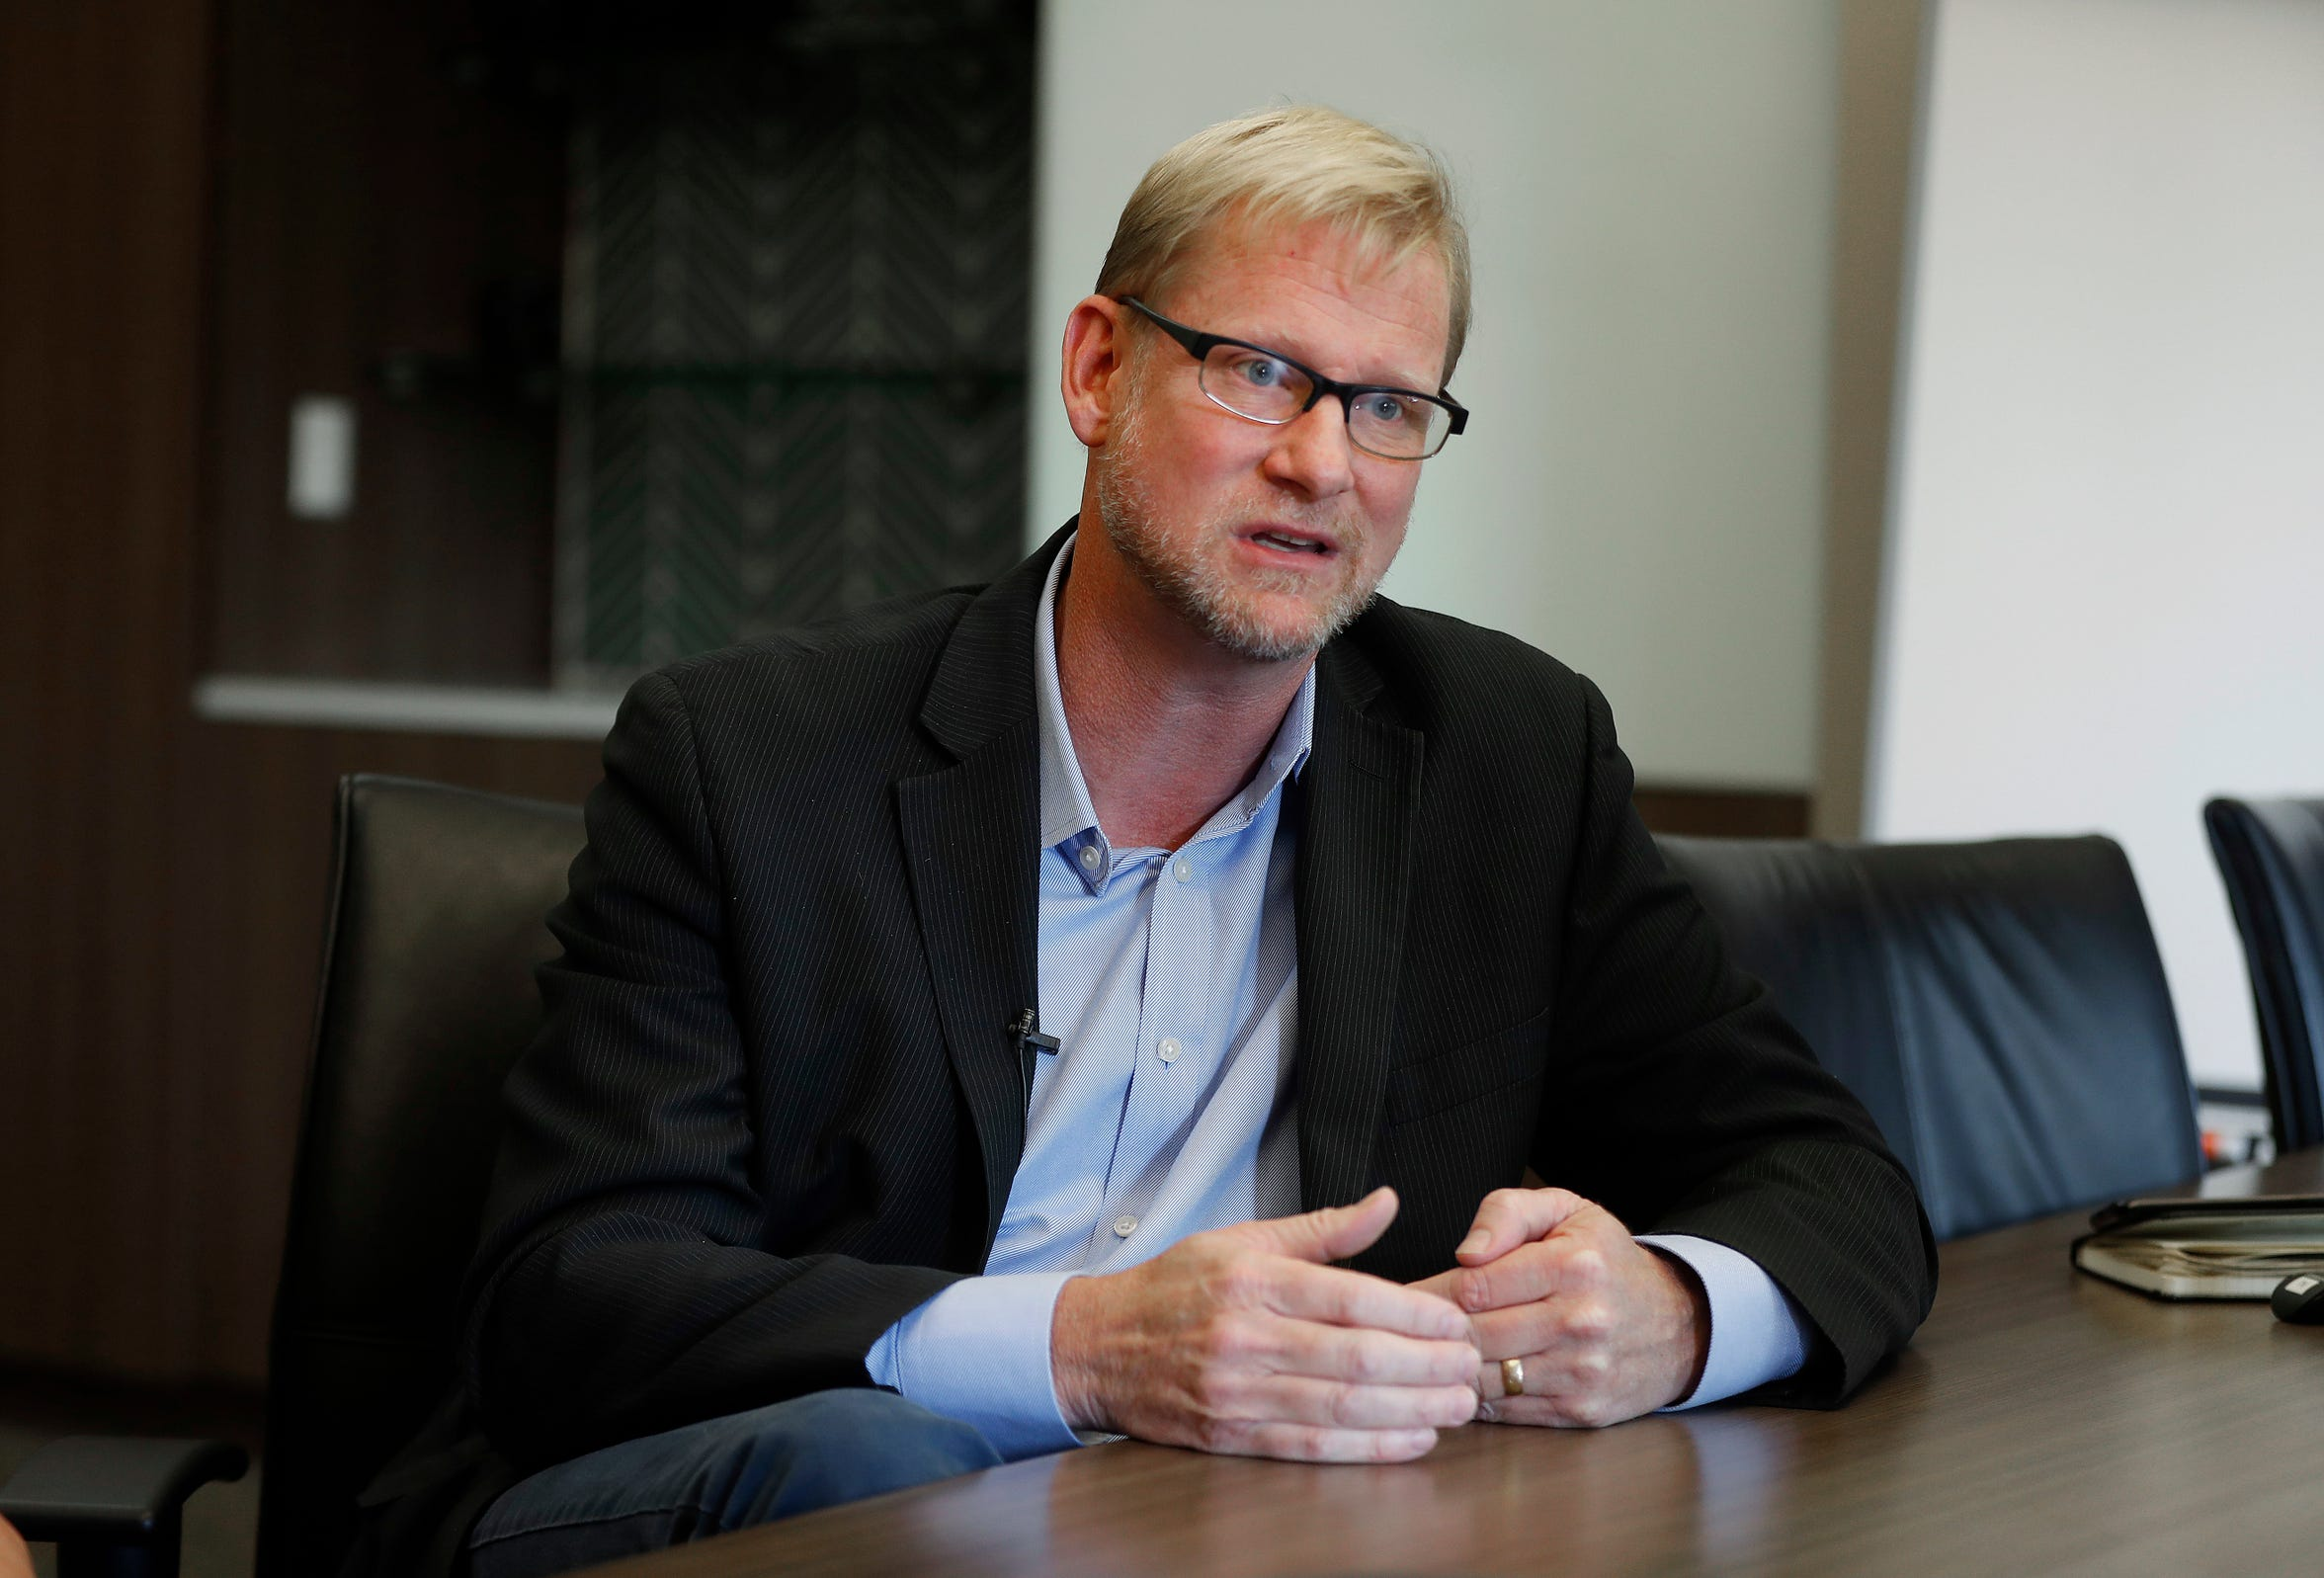 "In this Thursday, Aug. 23, 2018 photo, Chris Palusky, President and CEO of Bethany Christian Services, one of the nation's largest adoption agencies, explains their long term foster care program from their headquarters in Grand Rapids, Mich. ""We never want families to be separated,"" Palusky said. ""That's what we're about, is bringing families together."" (AP Photo/Paul Sancya)"